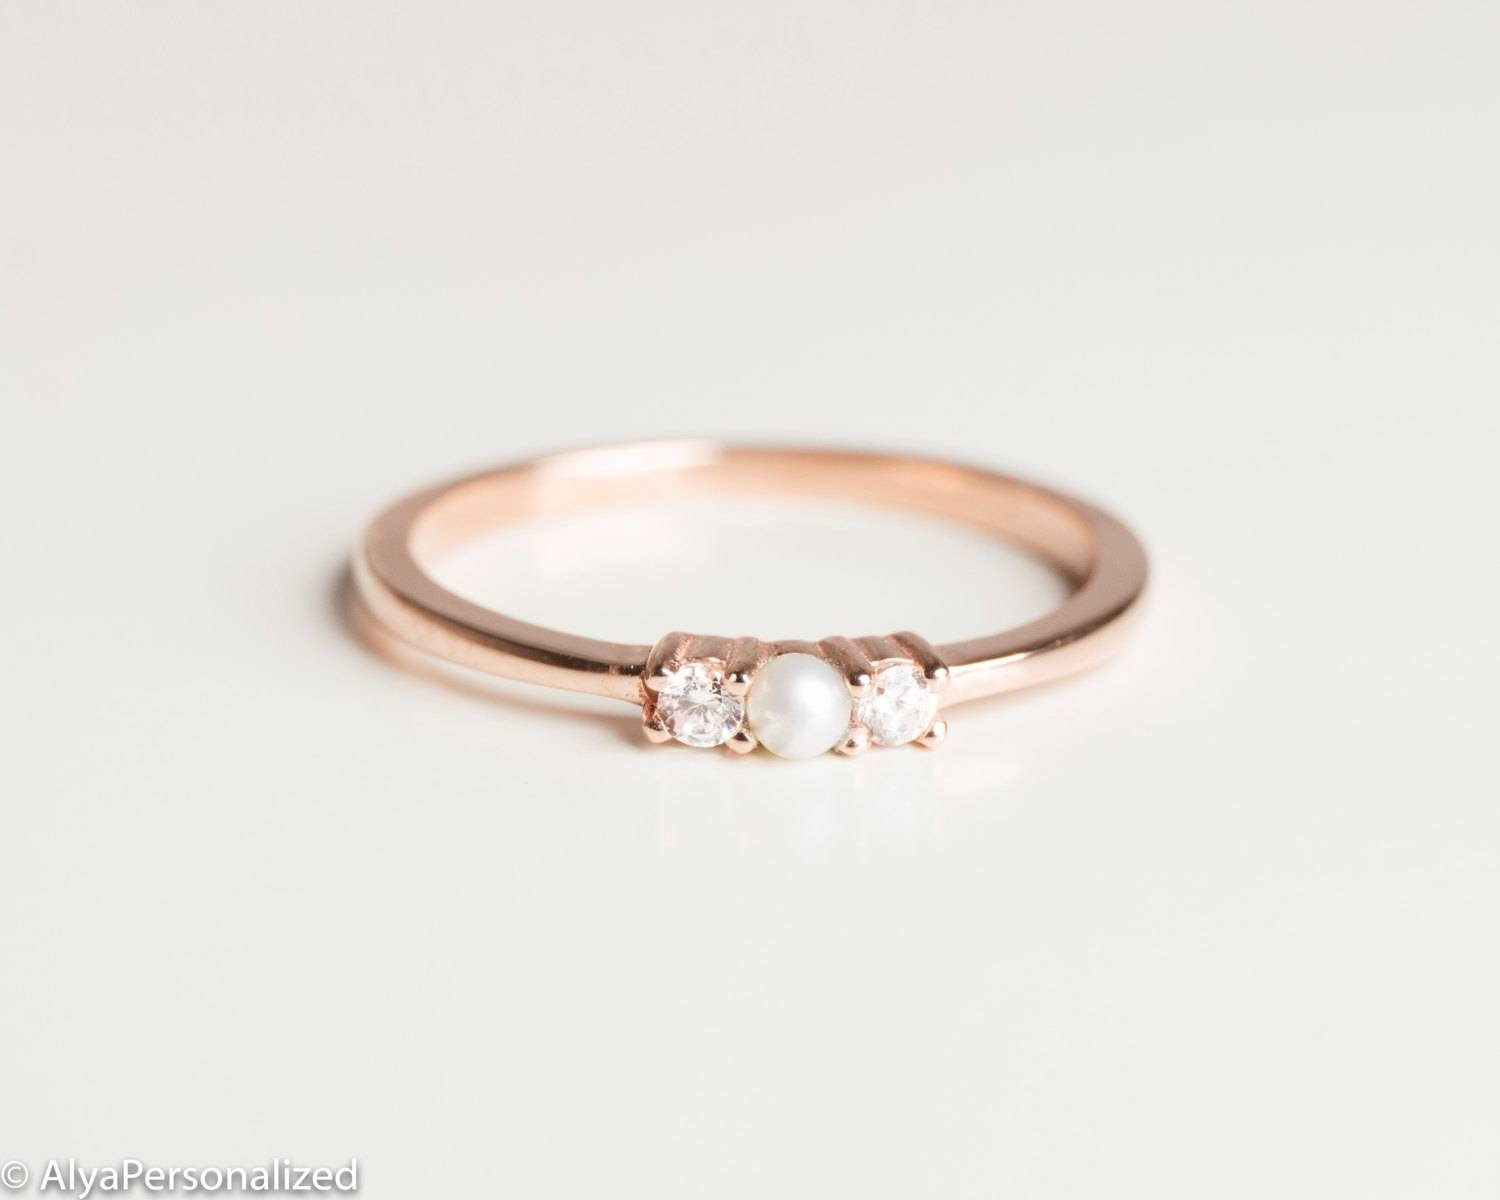 Anniversary Ring Simple Ring Band Thin Rose Gold Ring In Best And Newest Rose Gold Anniversary Rings (View 5 of 25)